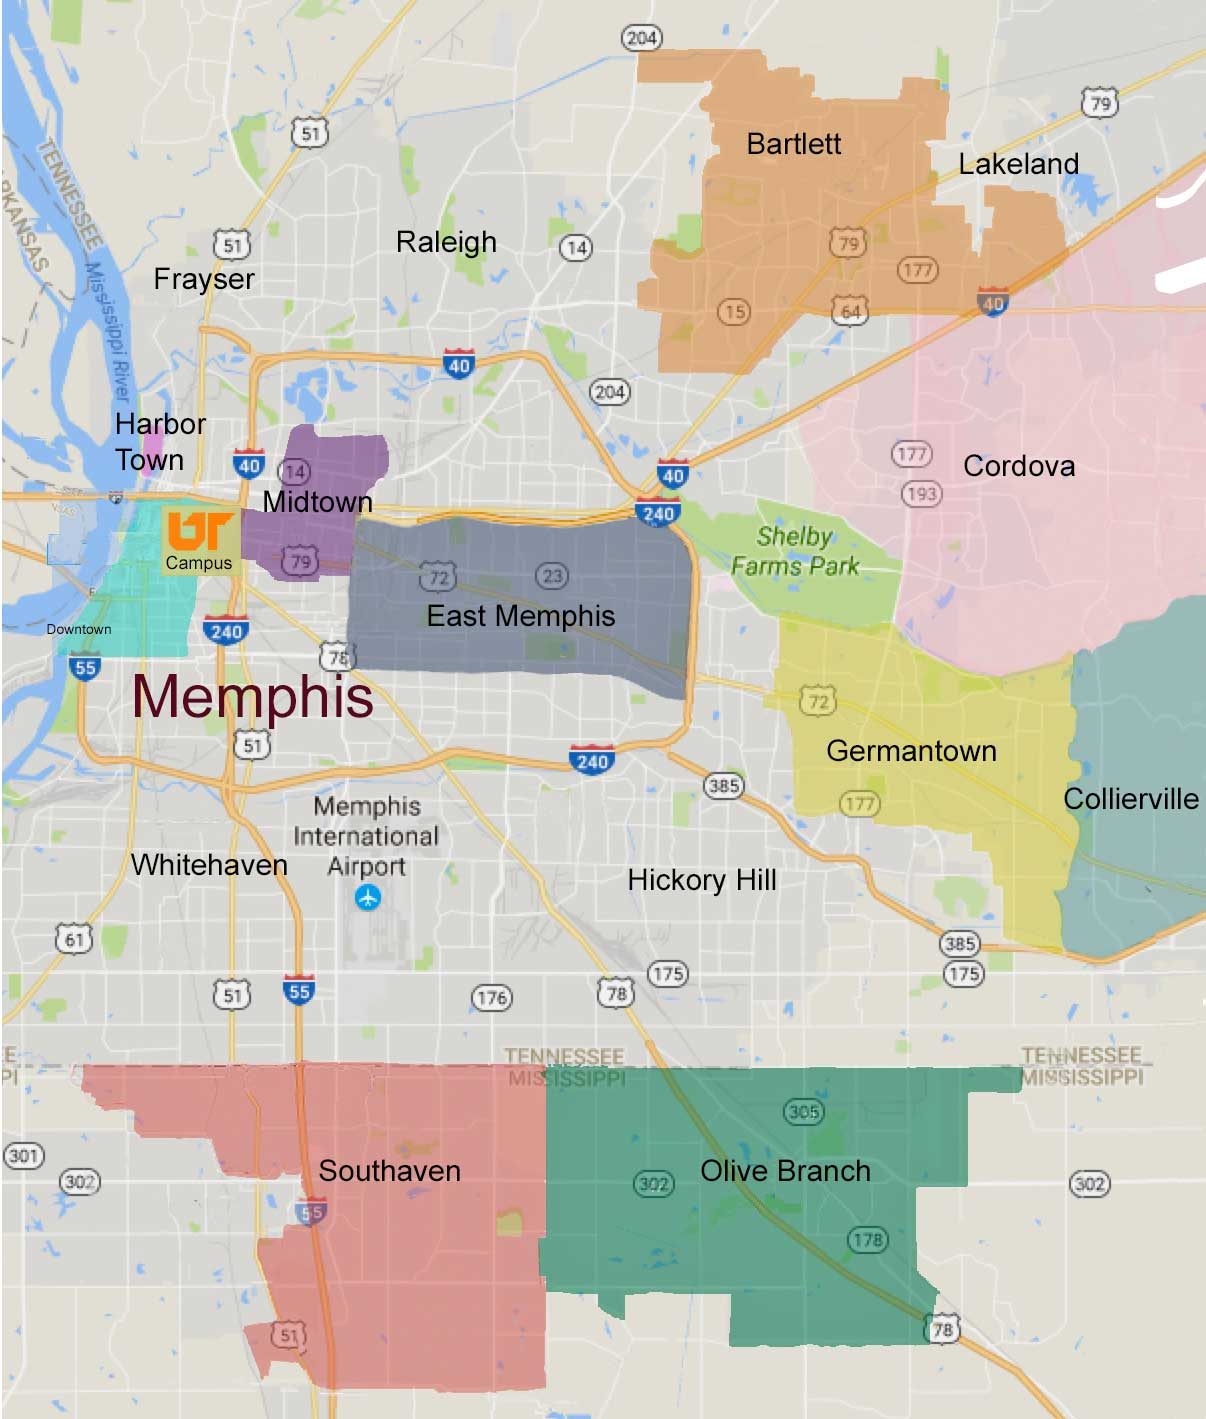 map of Memphis neighborhoods